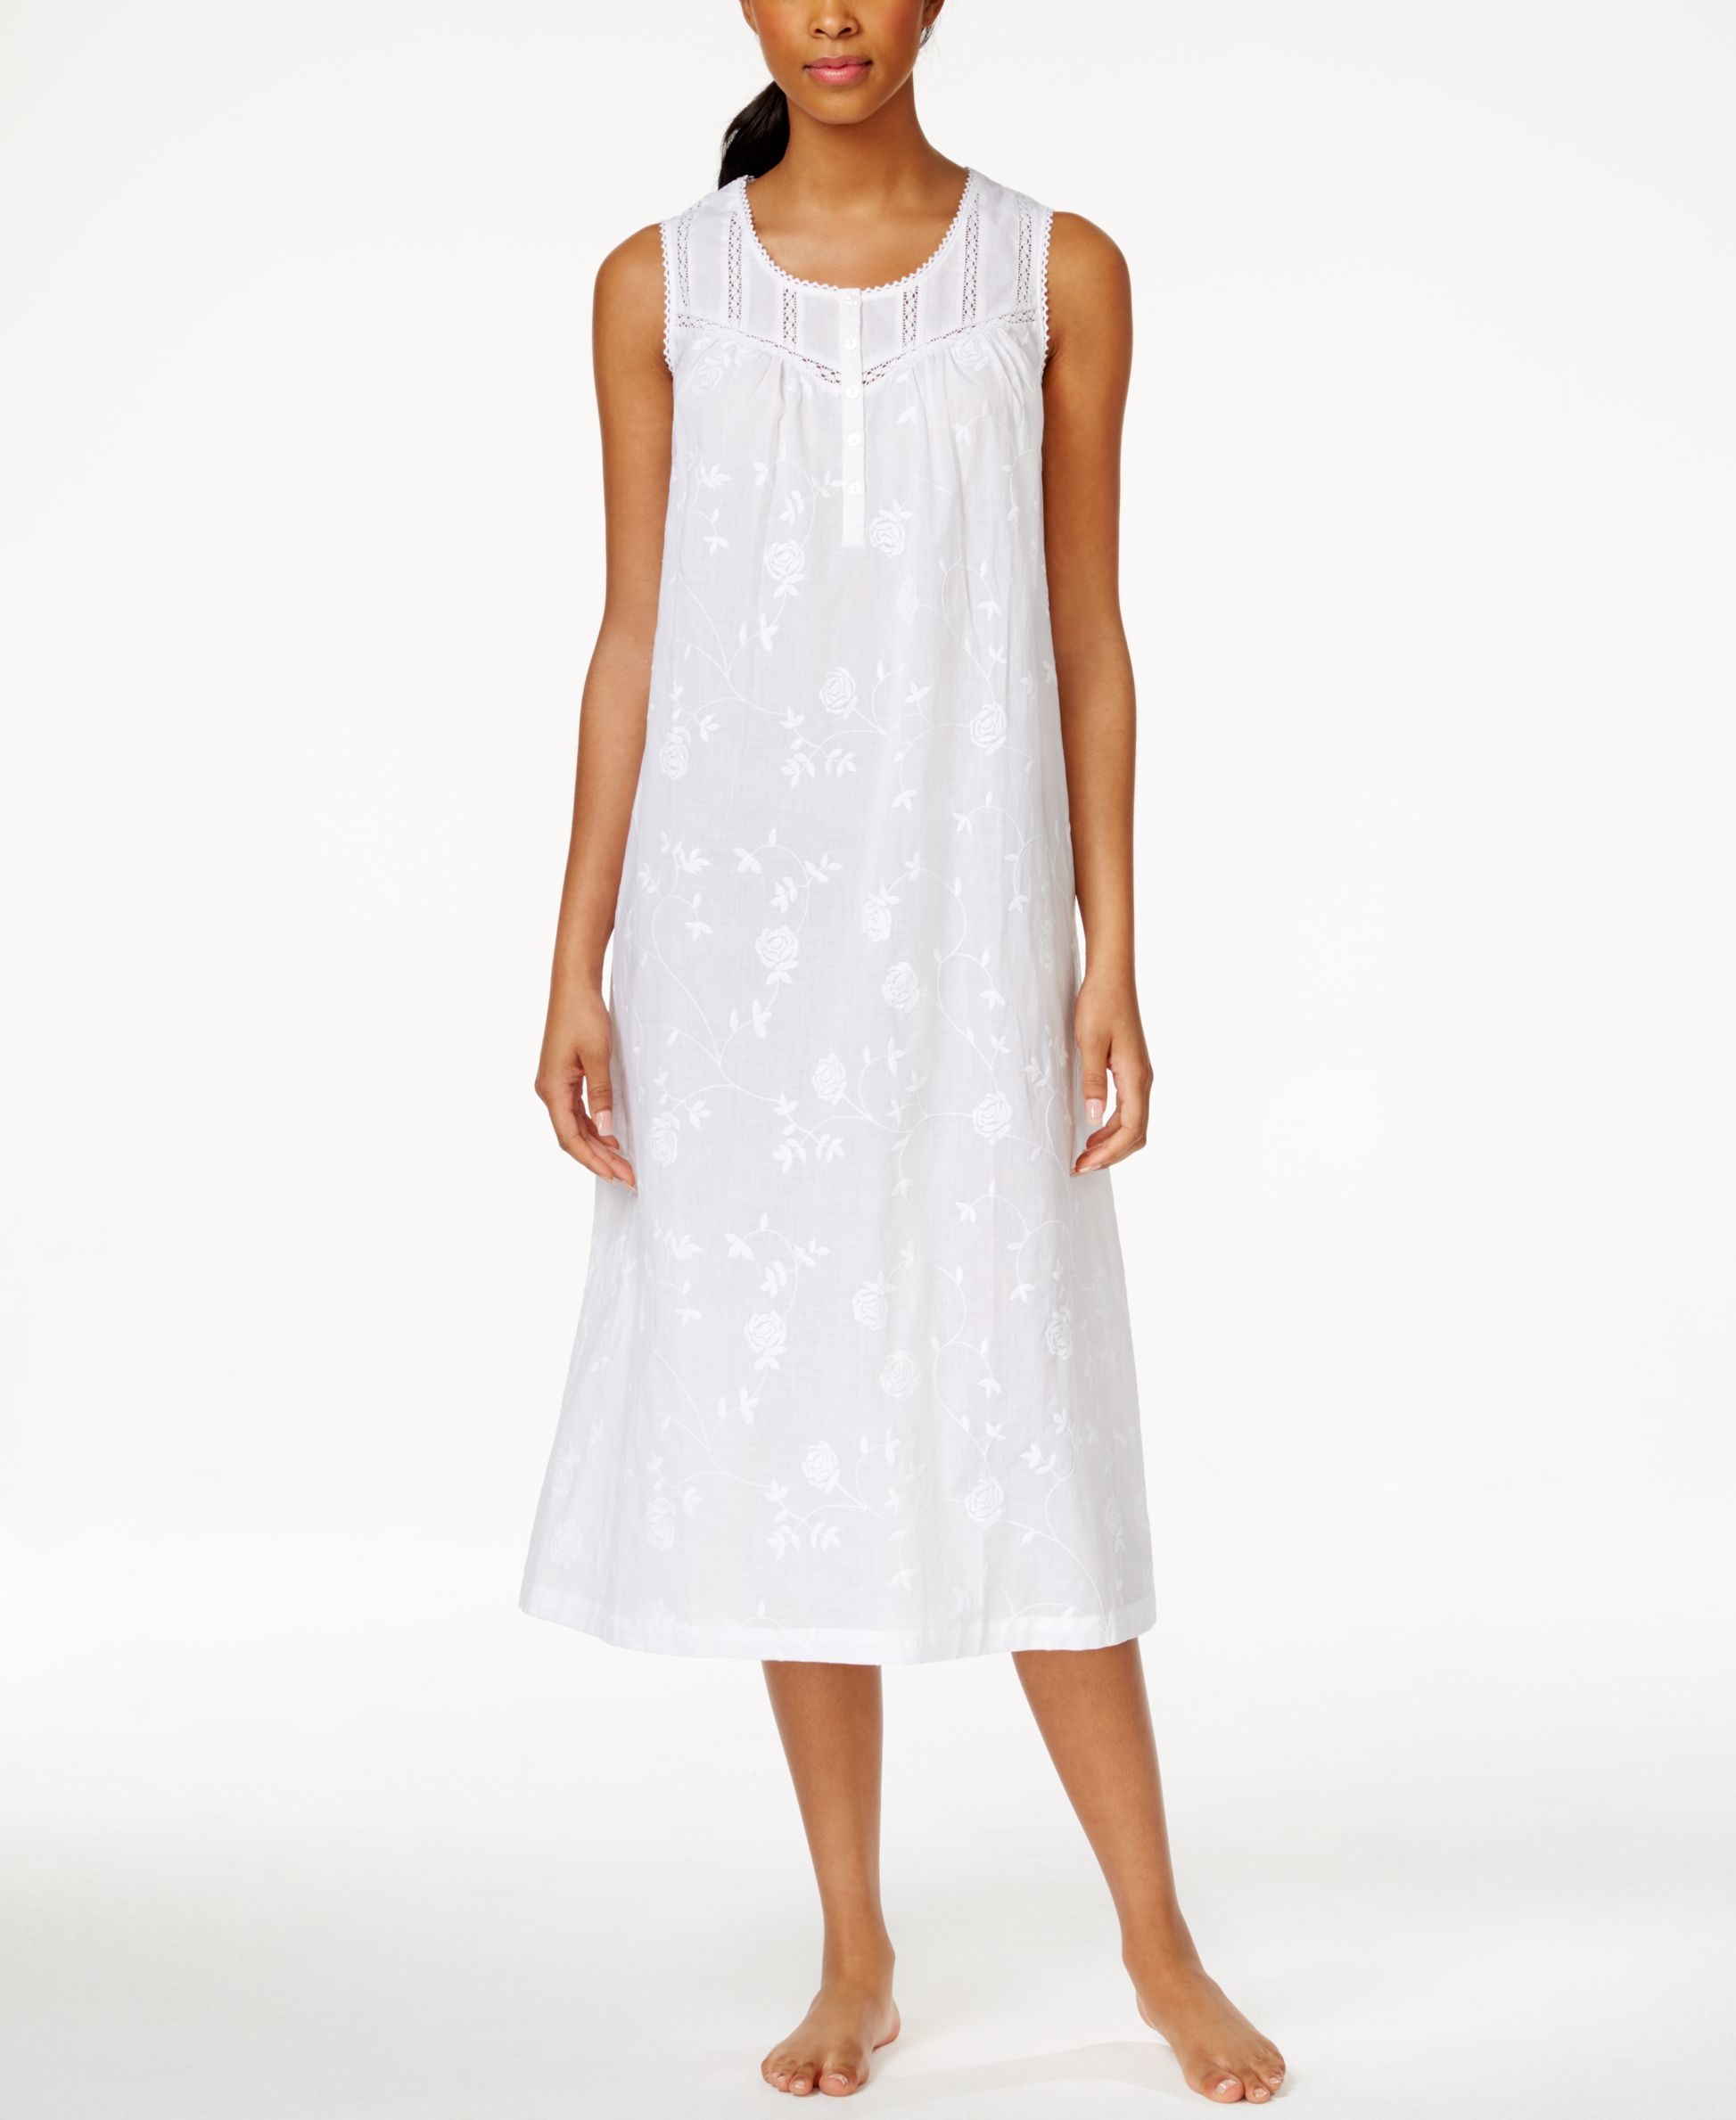 macys lauren dresses photo - 1